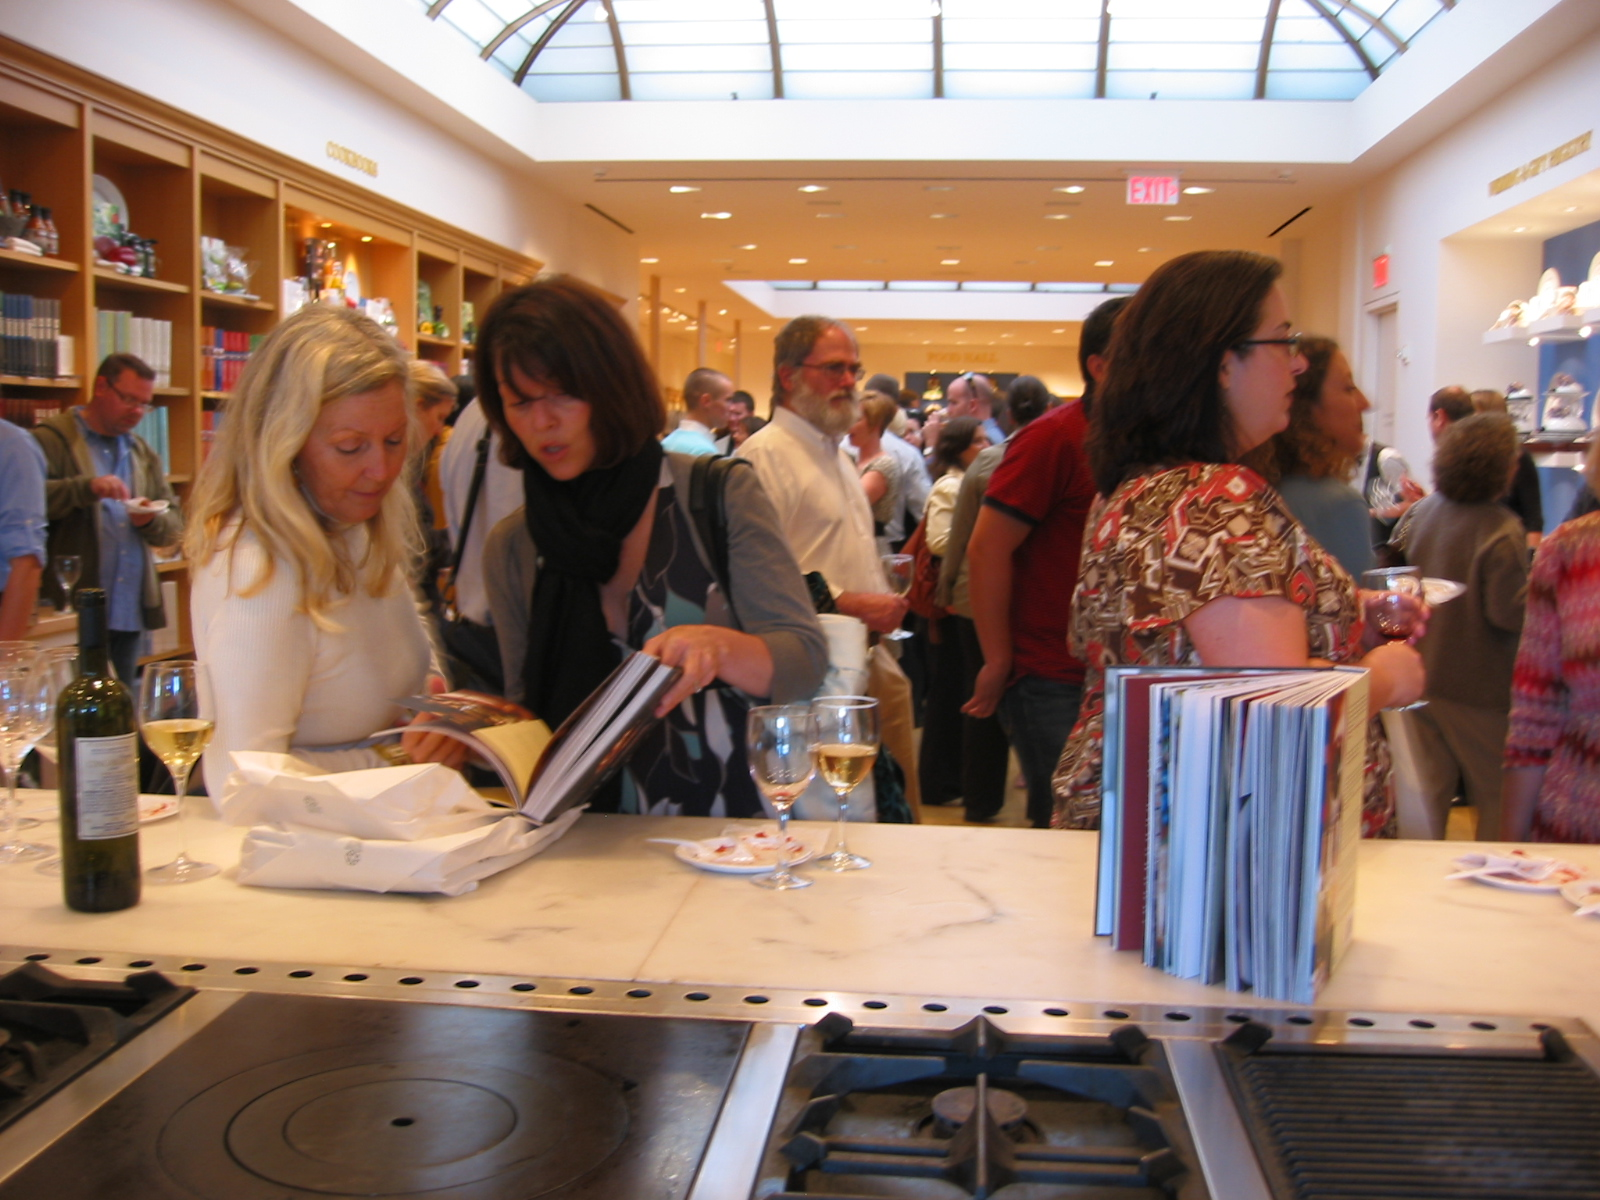 The launch party took place on the top floor of the William-Sonoma flagship store in San Francisco's Union Square.